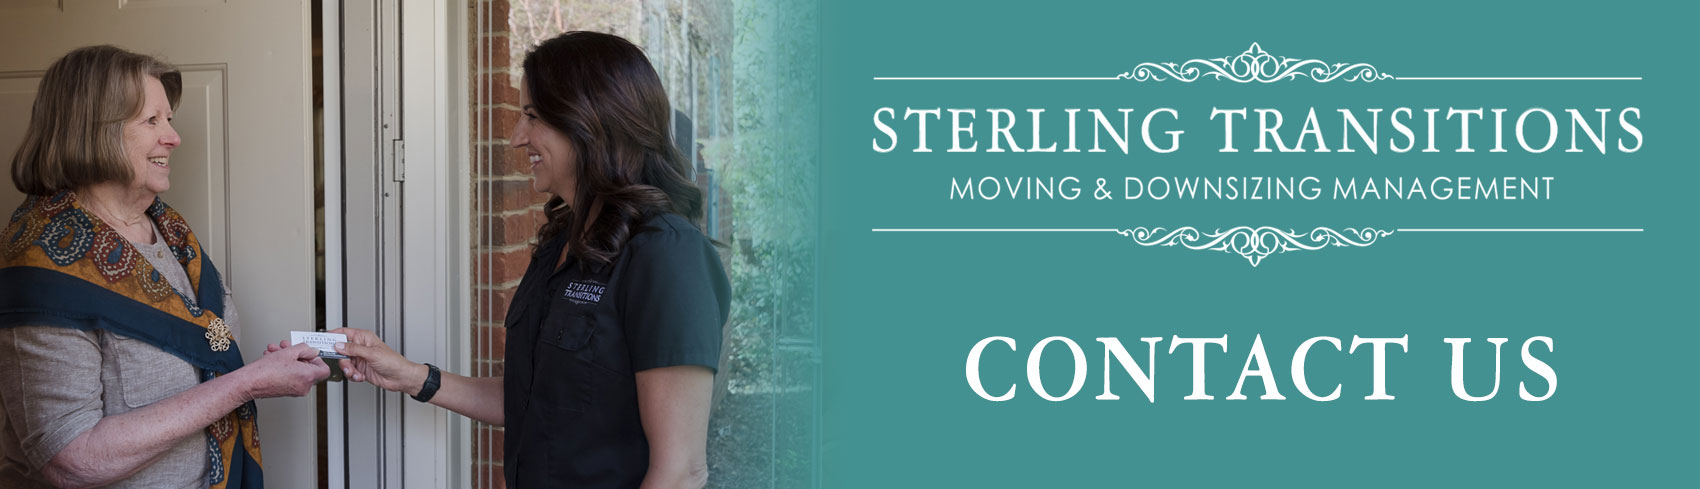 Contact Sterling Transitions Today